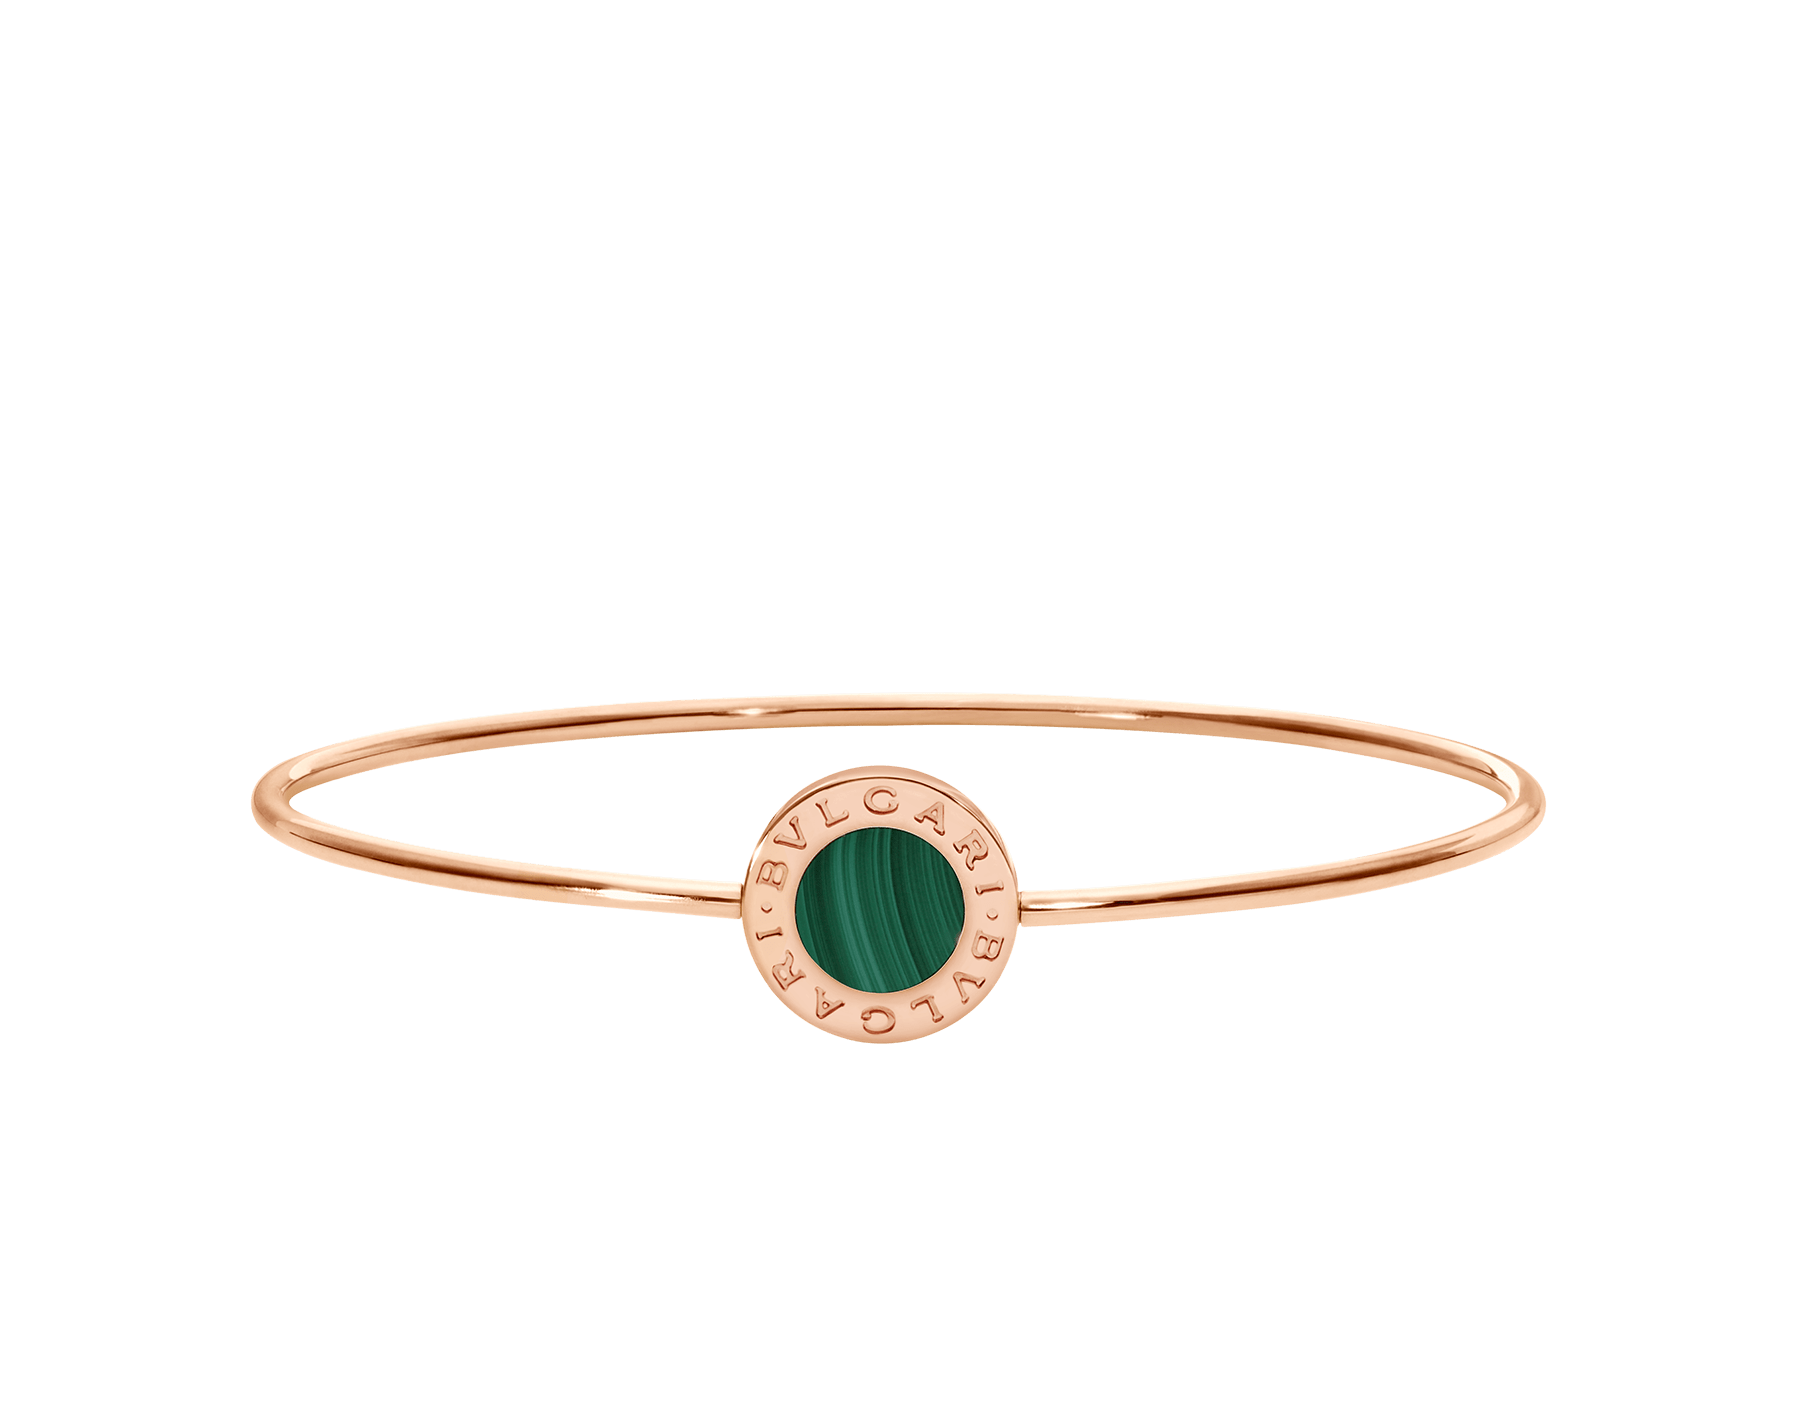 BVLGARI BVLGARI 18 kt rose gold bracelet set with malachite element BR858696 image 2